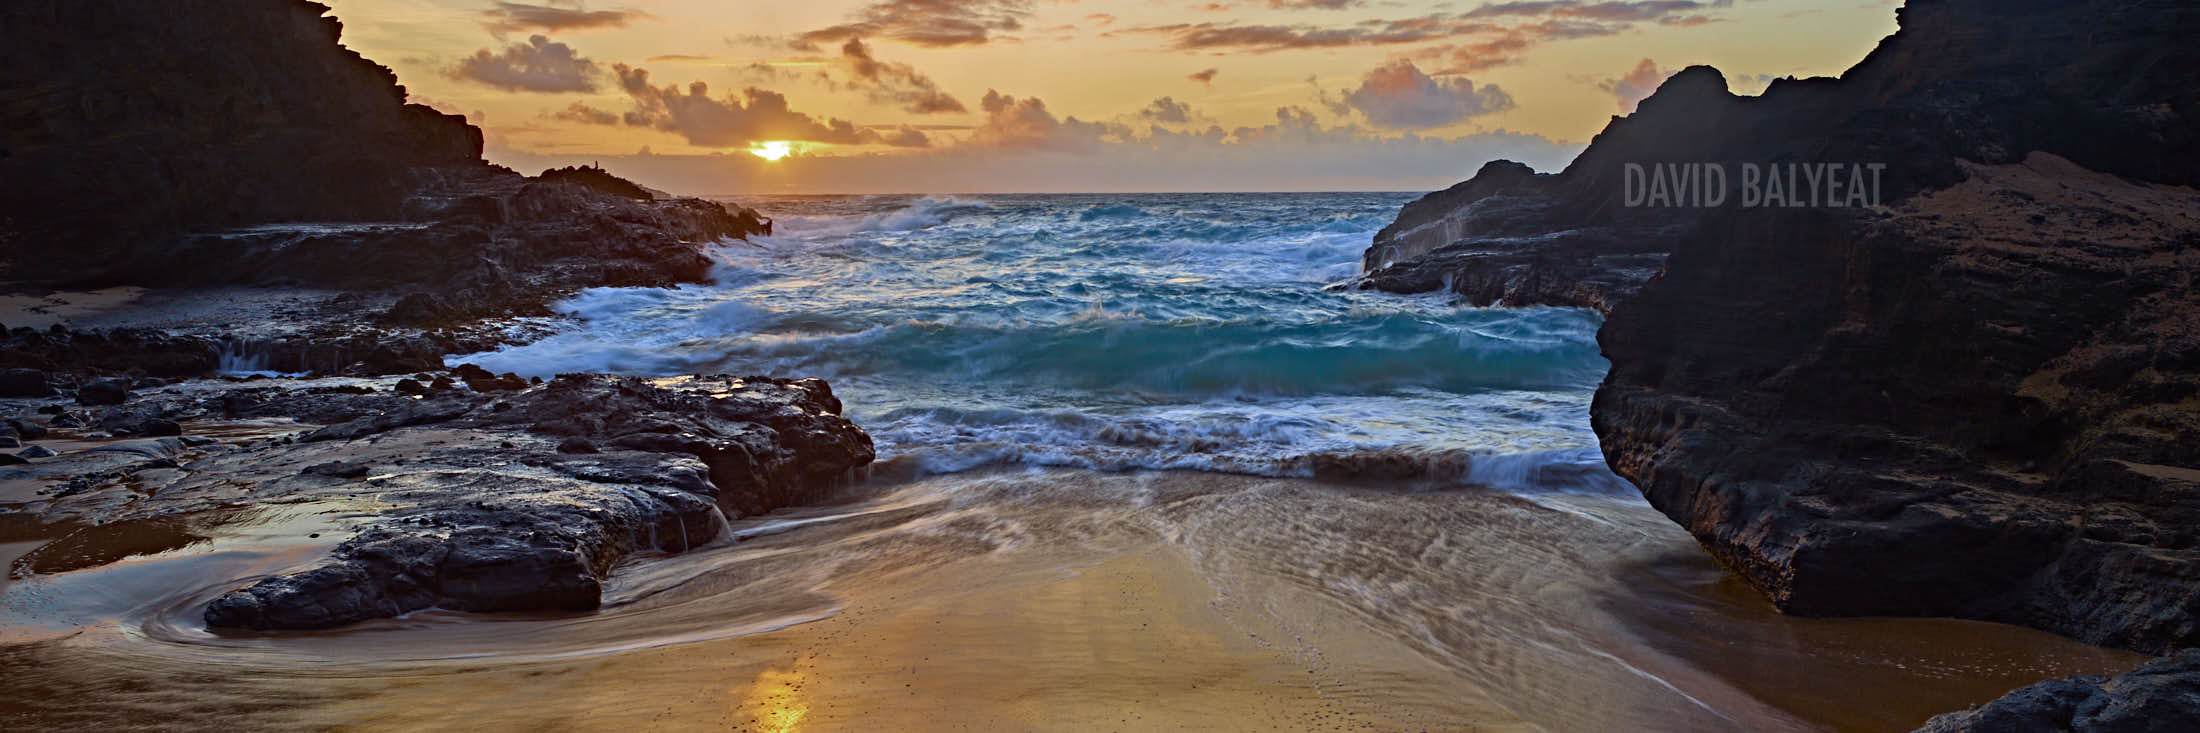 Hidden cove Hawaii sunrise panoramic high-definition HD professional landscape photography